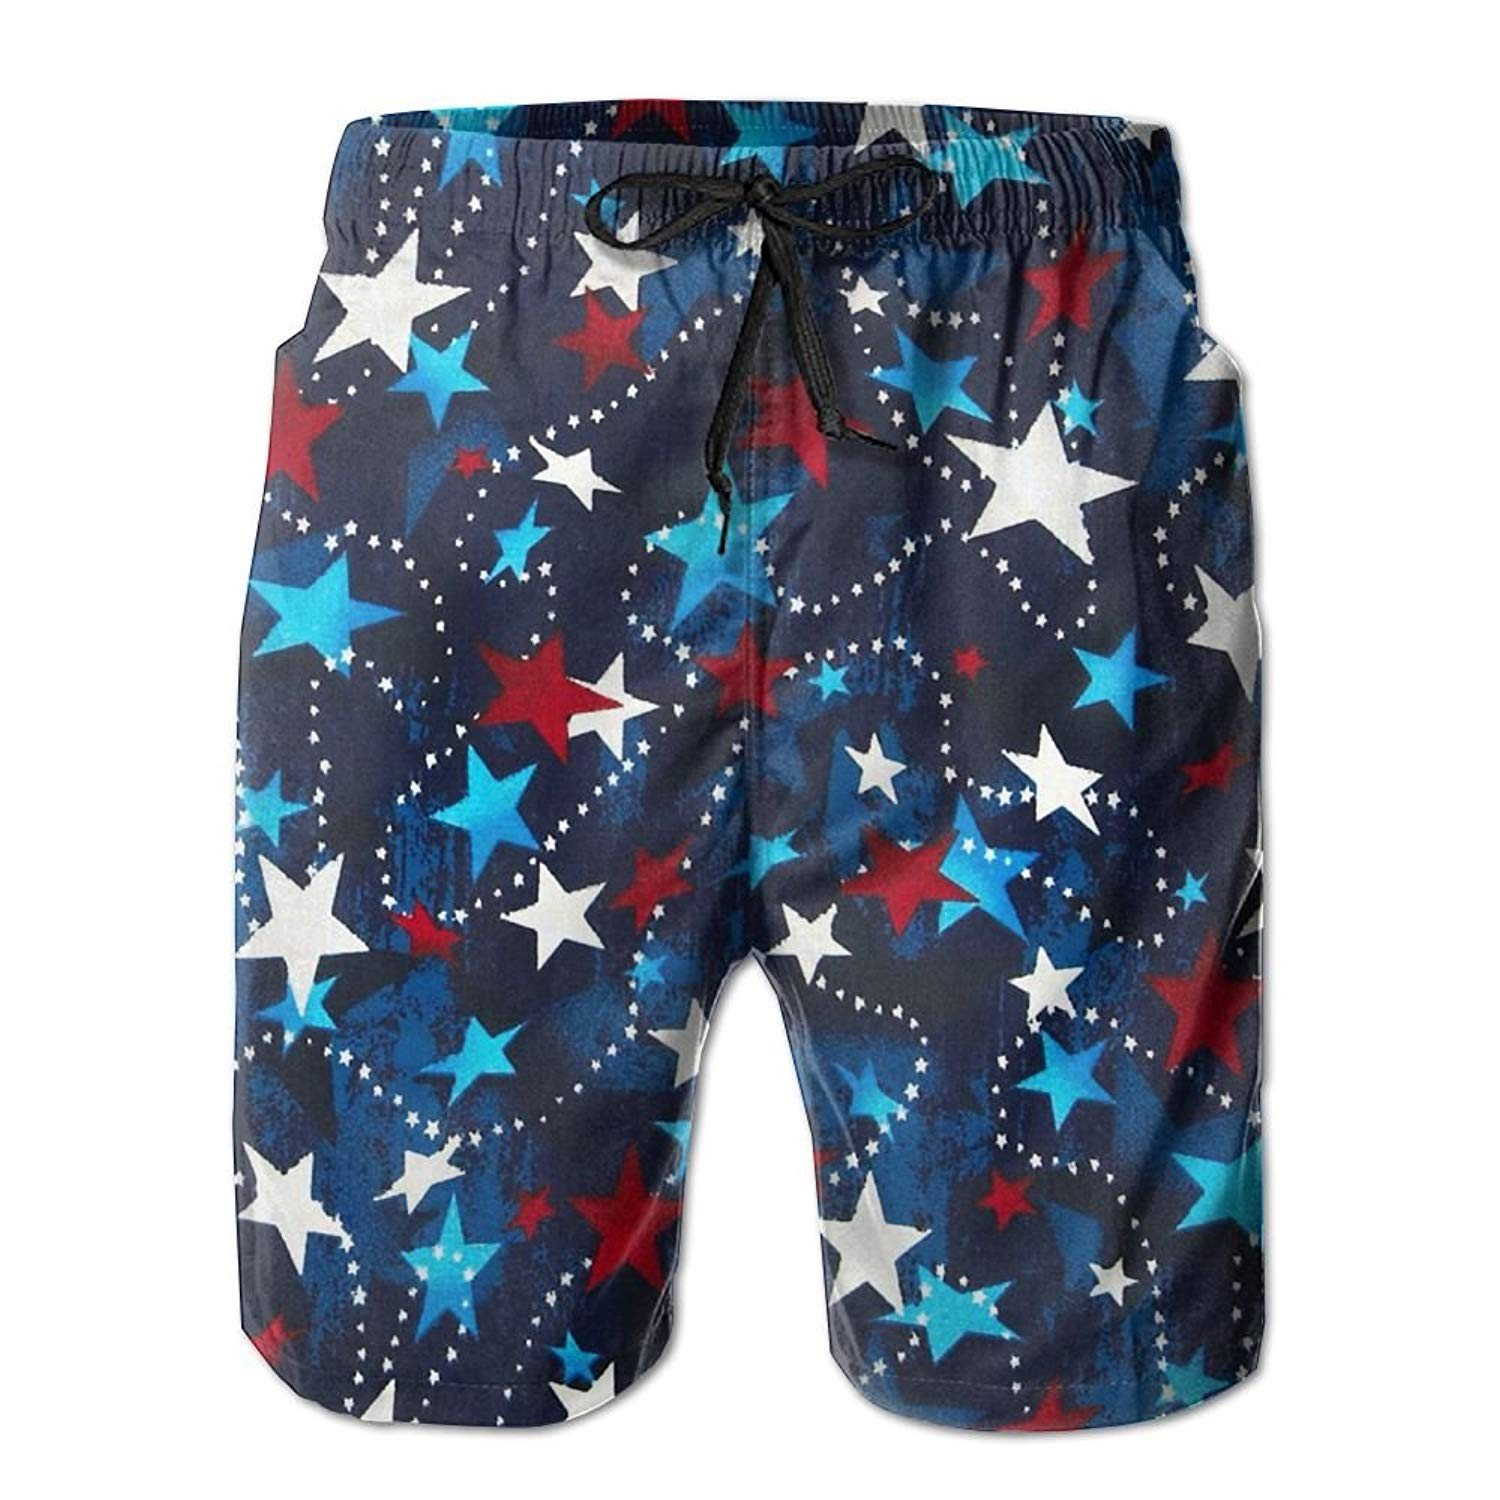 bdca4caed4 Get Quotations · Vt9RE1k Men's Made in The USA Stars Red White Blue Swim  Trunks Beach Elastic Shorts Cotton